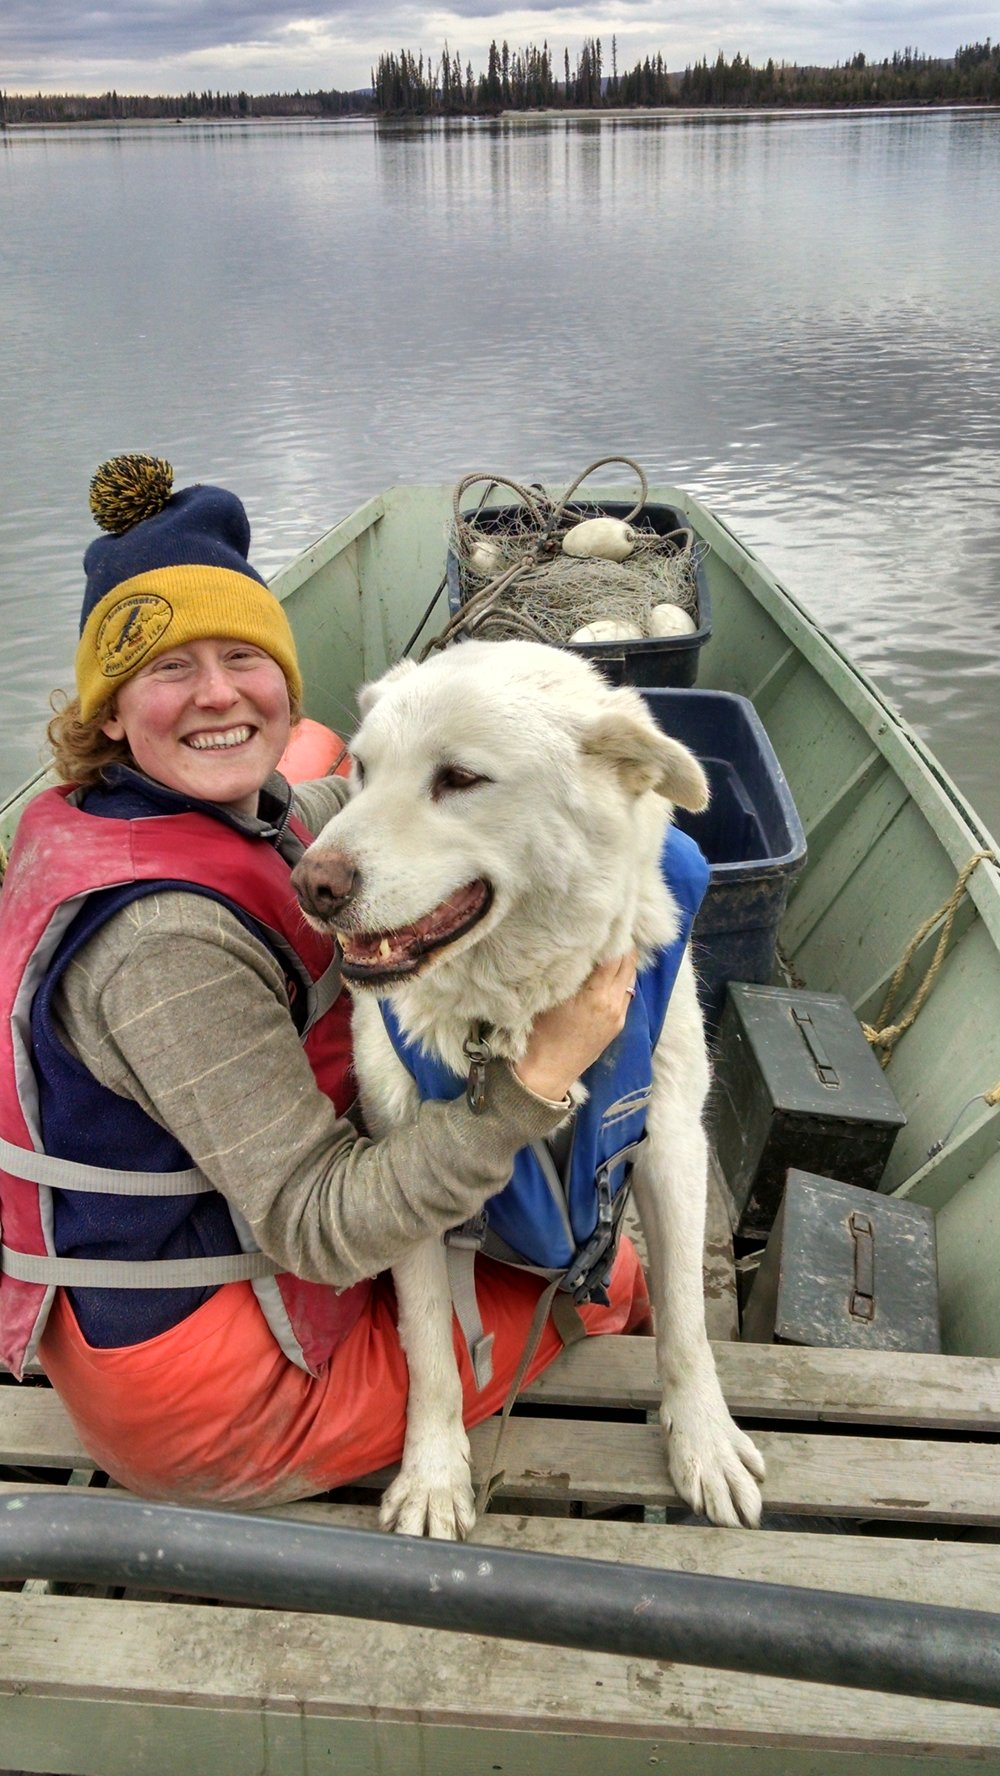 jenna and polar in boat